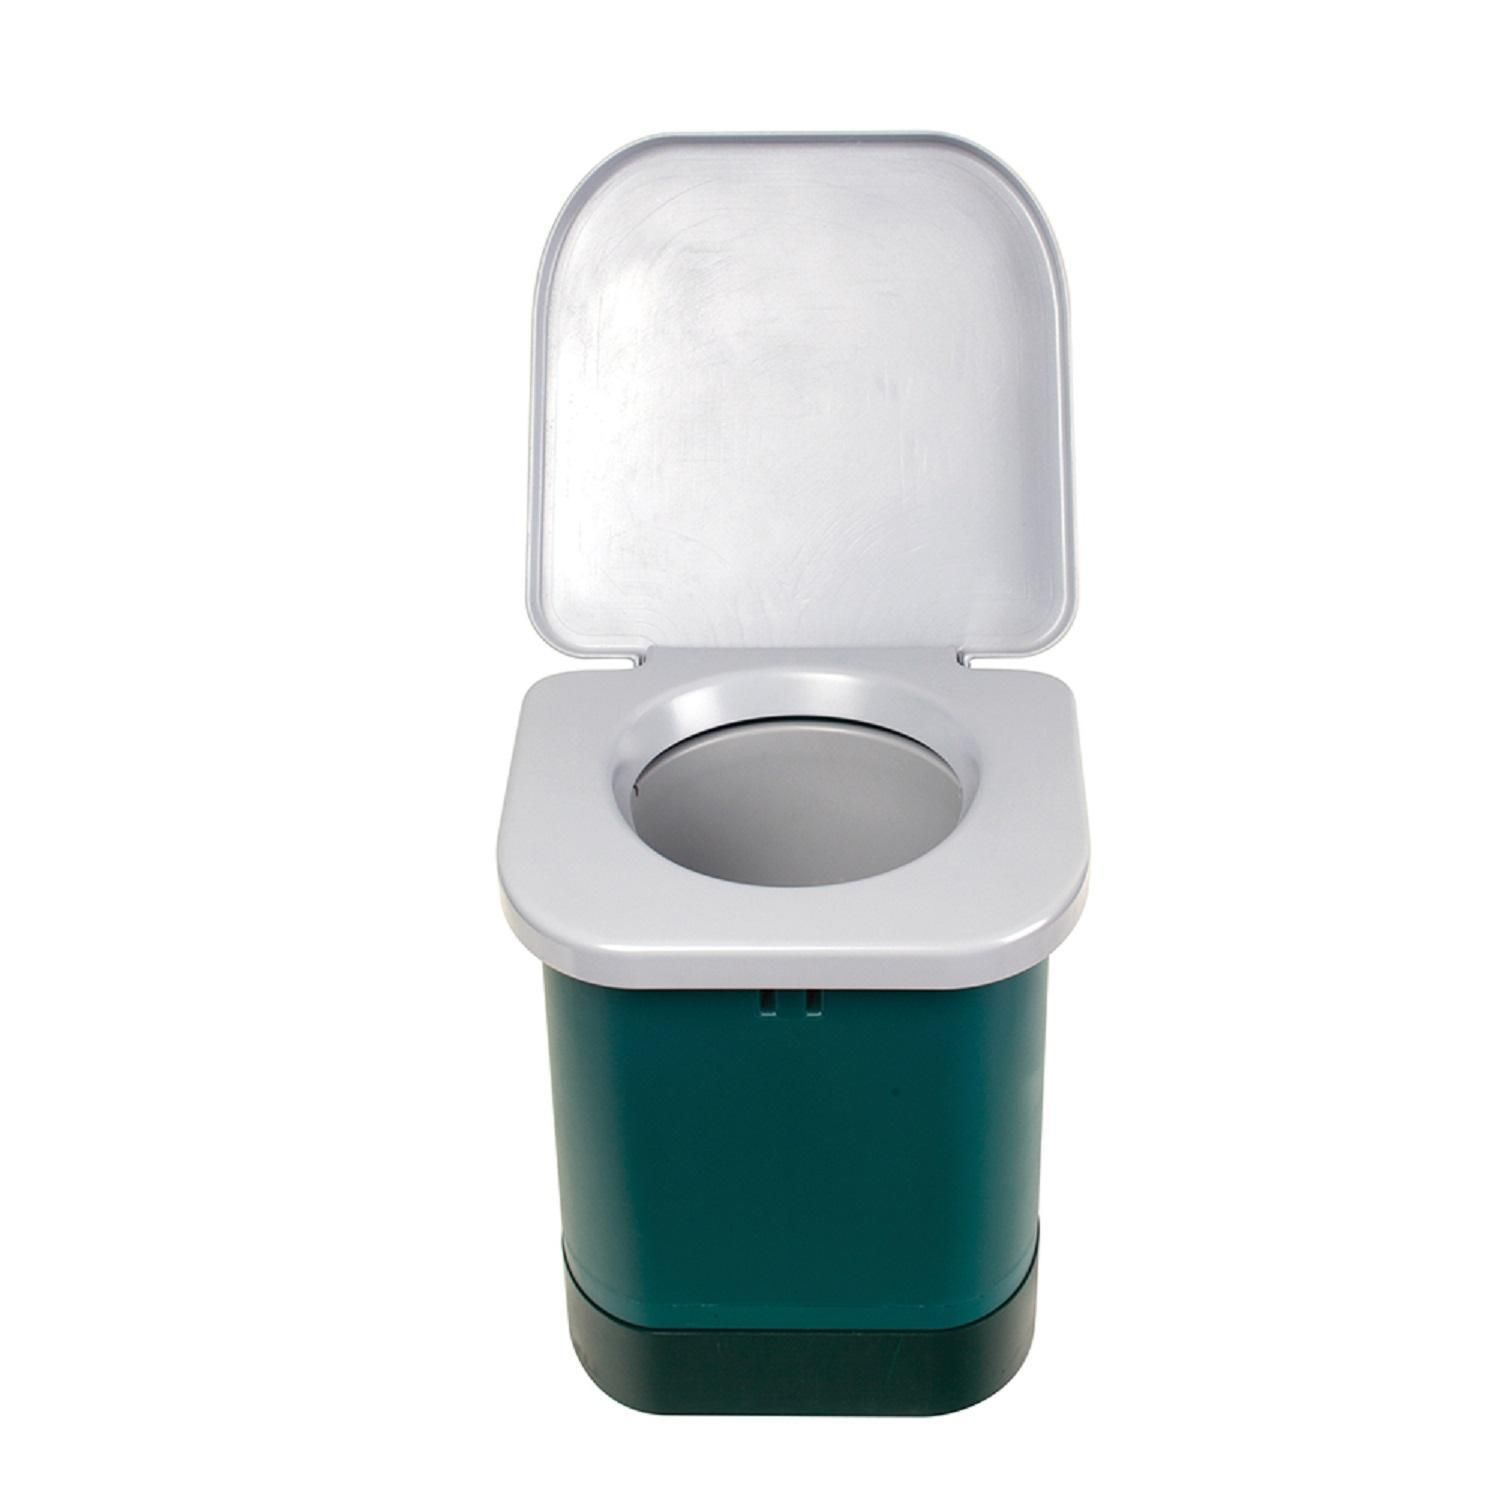 Stansport Easy-Go Portable Camp Toilet #CampingToilet | Camping ...